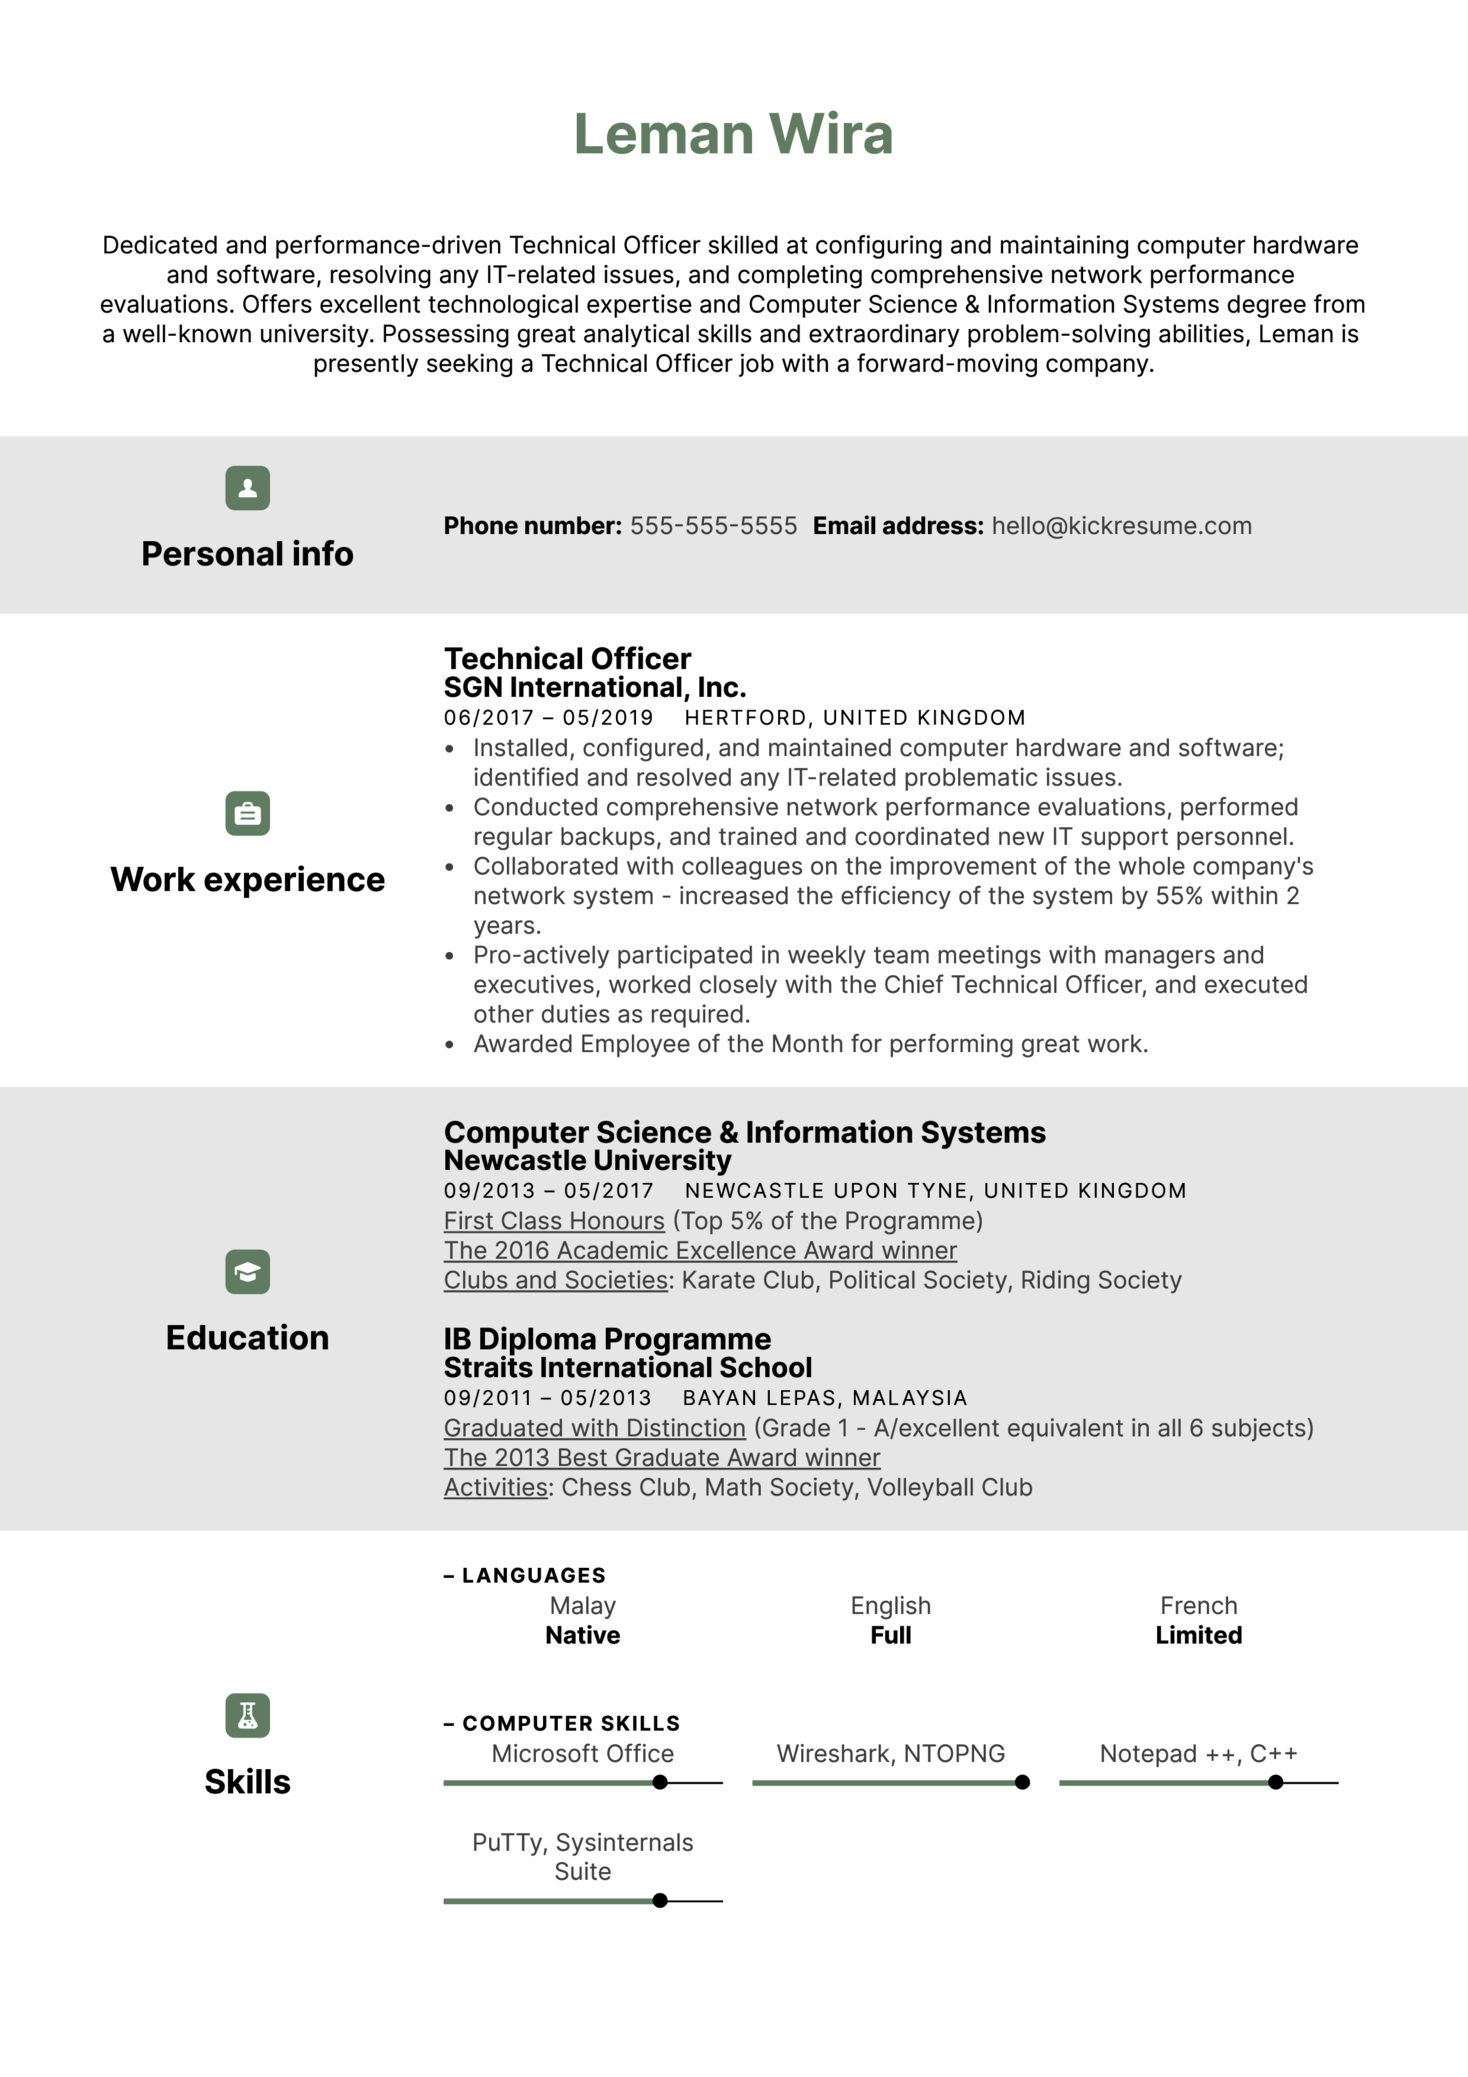 Technical Officer Resume Sample (parte 1)